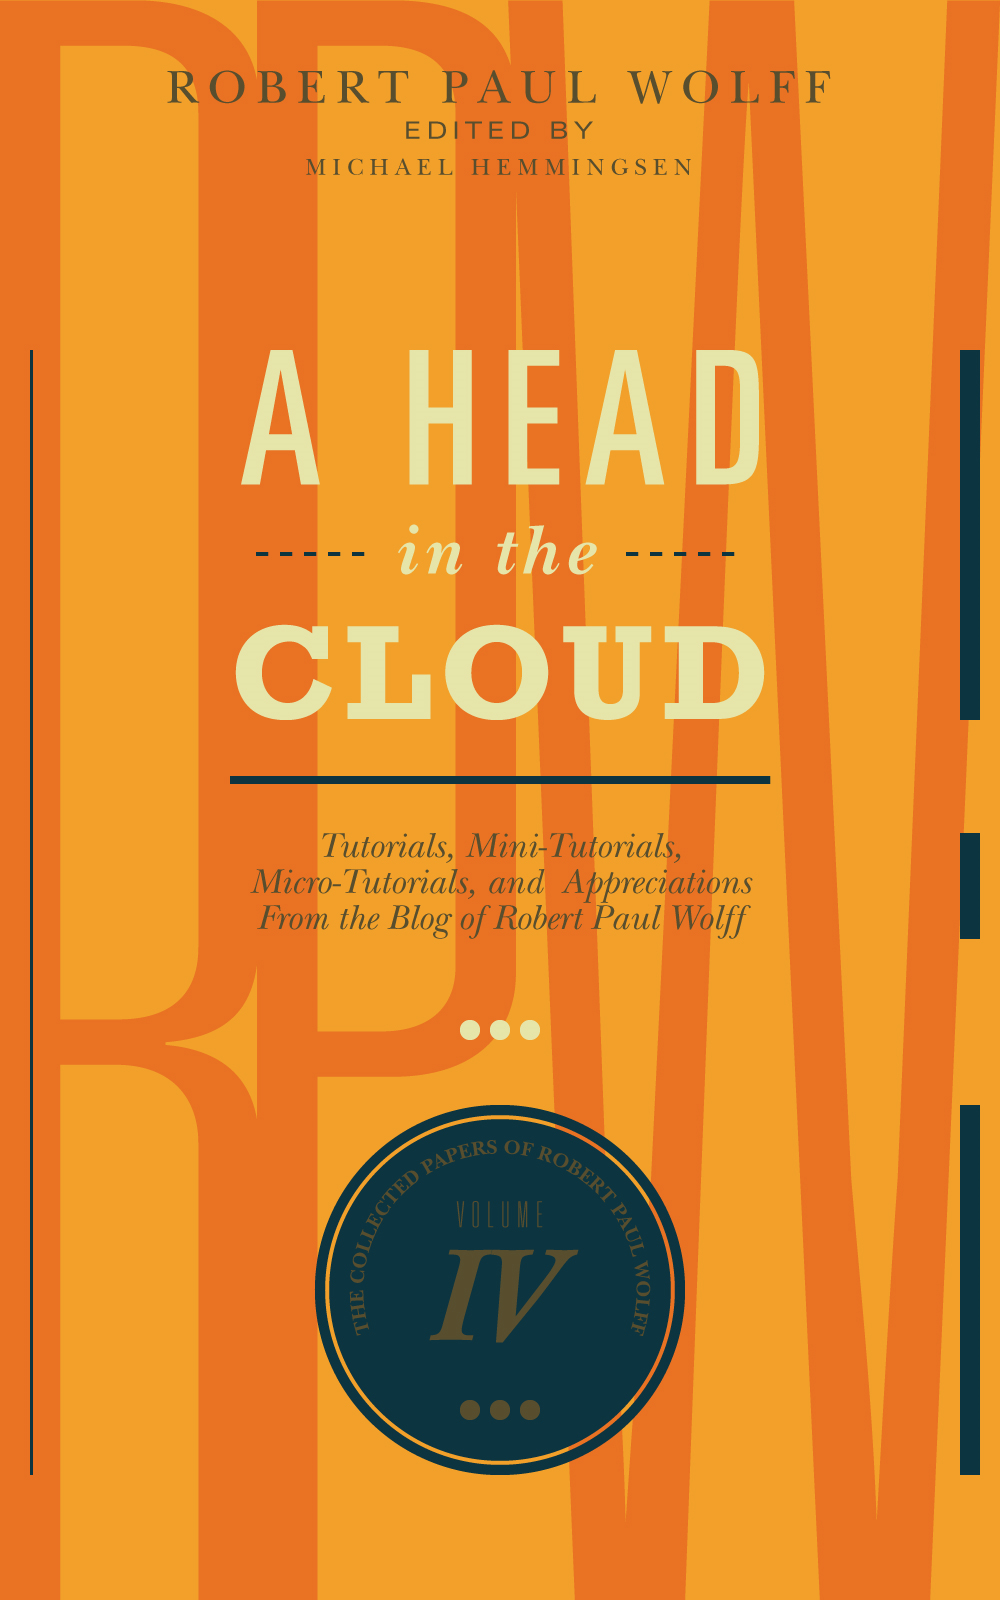 Robert Paul Wolff - A Head In The Cloud